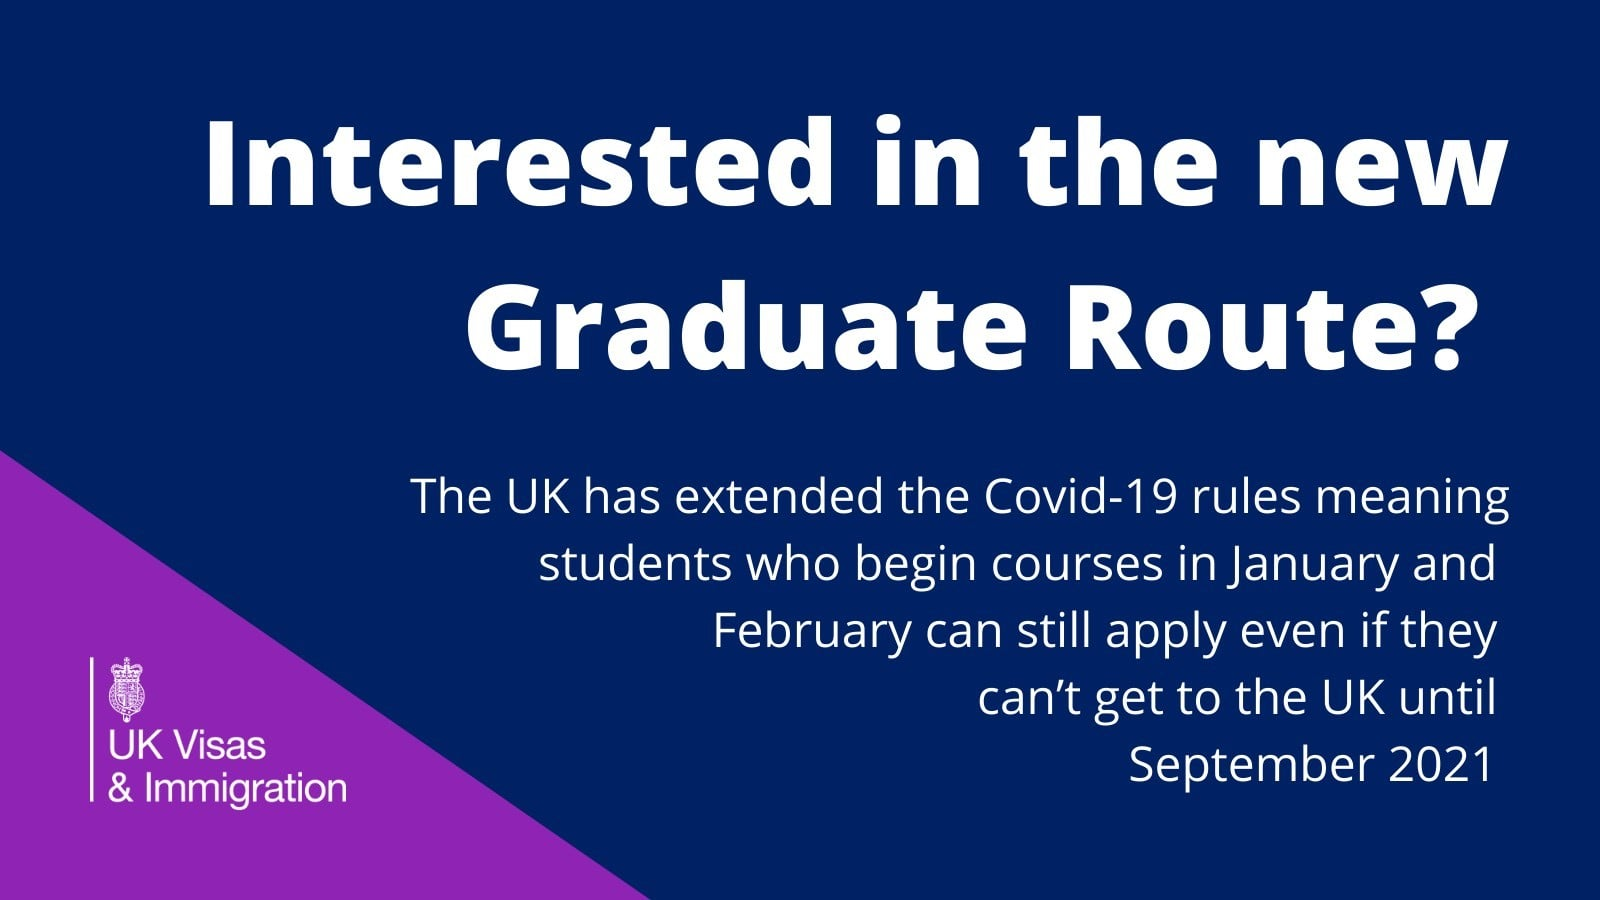 Route is for international students who want to work following the successful completion of a course of study at UK bachelor's degree-level or above.